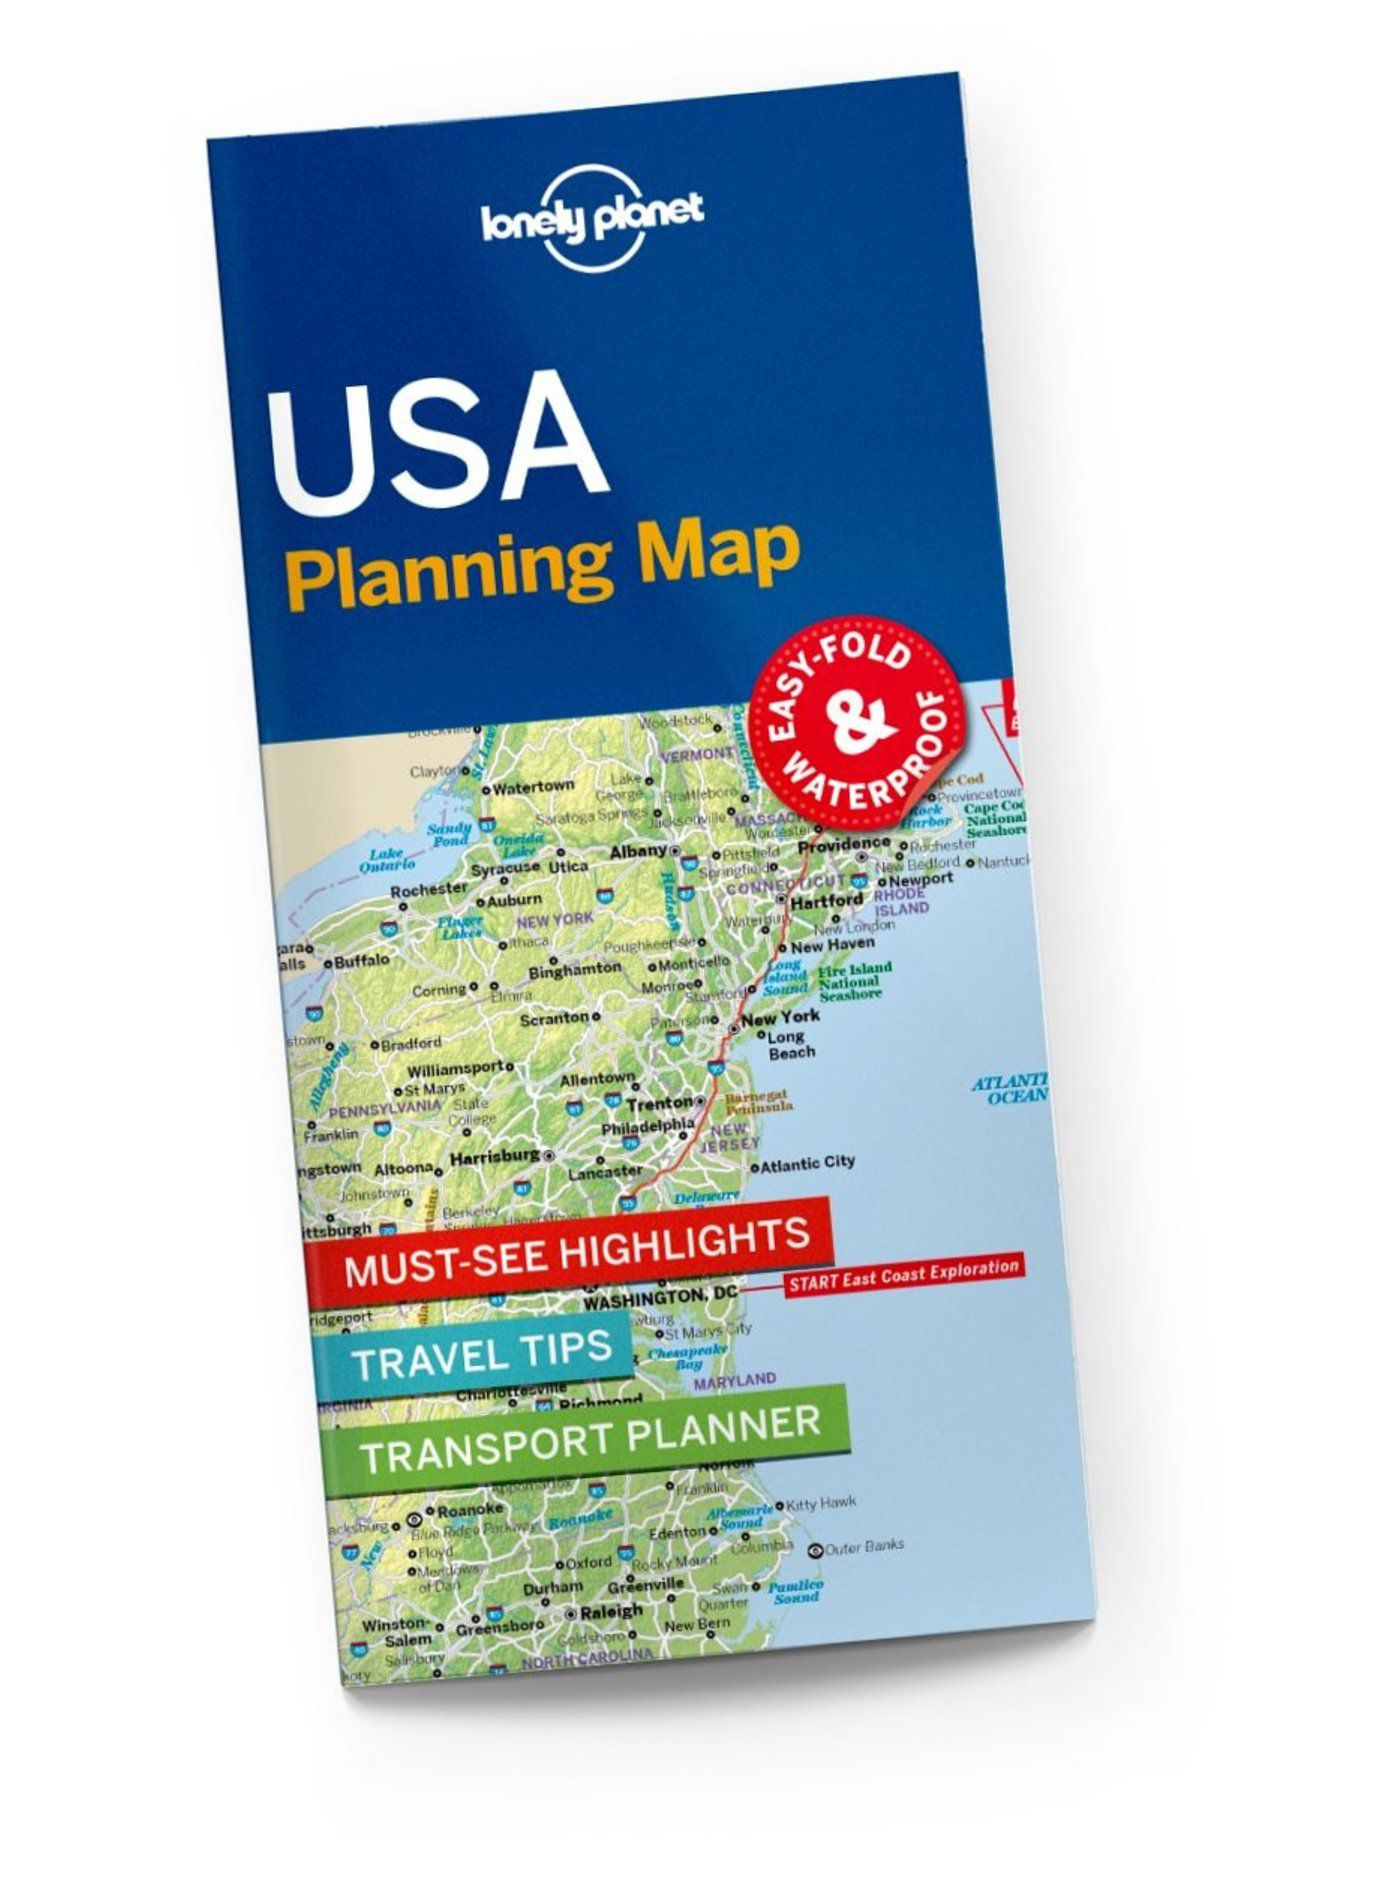 USA Planning Map, 1st Edition Jun 2017 by Lonely Planet 9781786579096